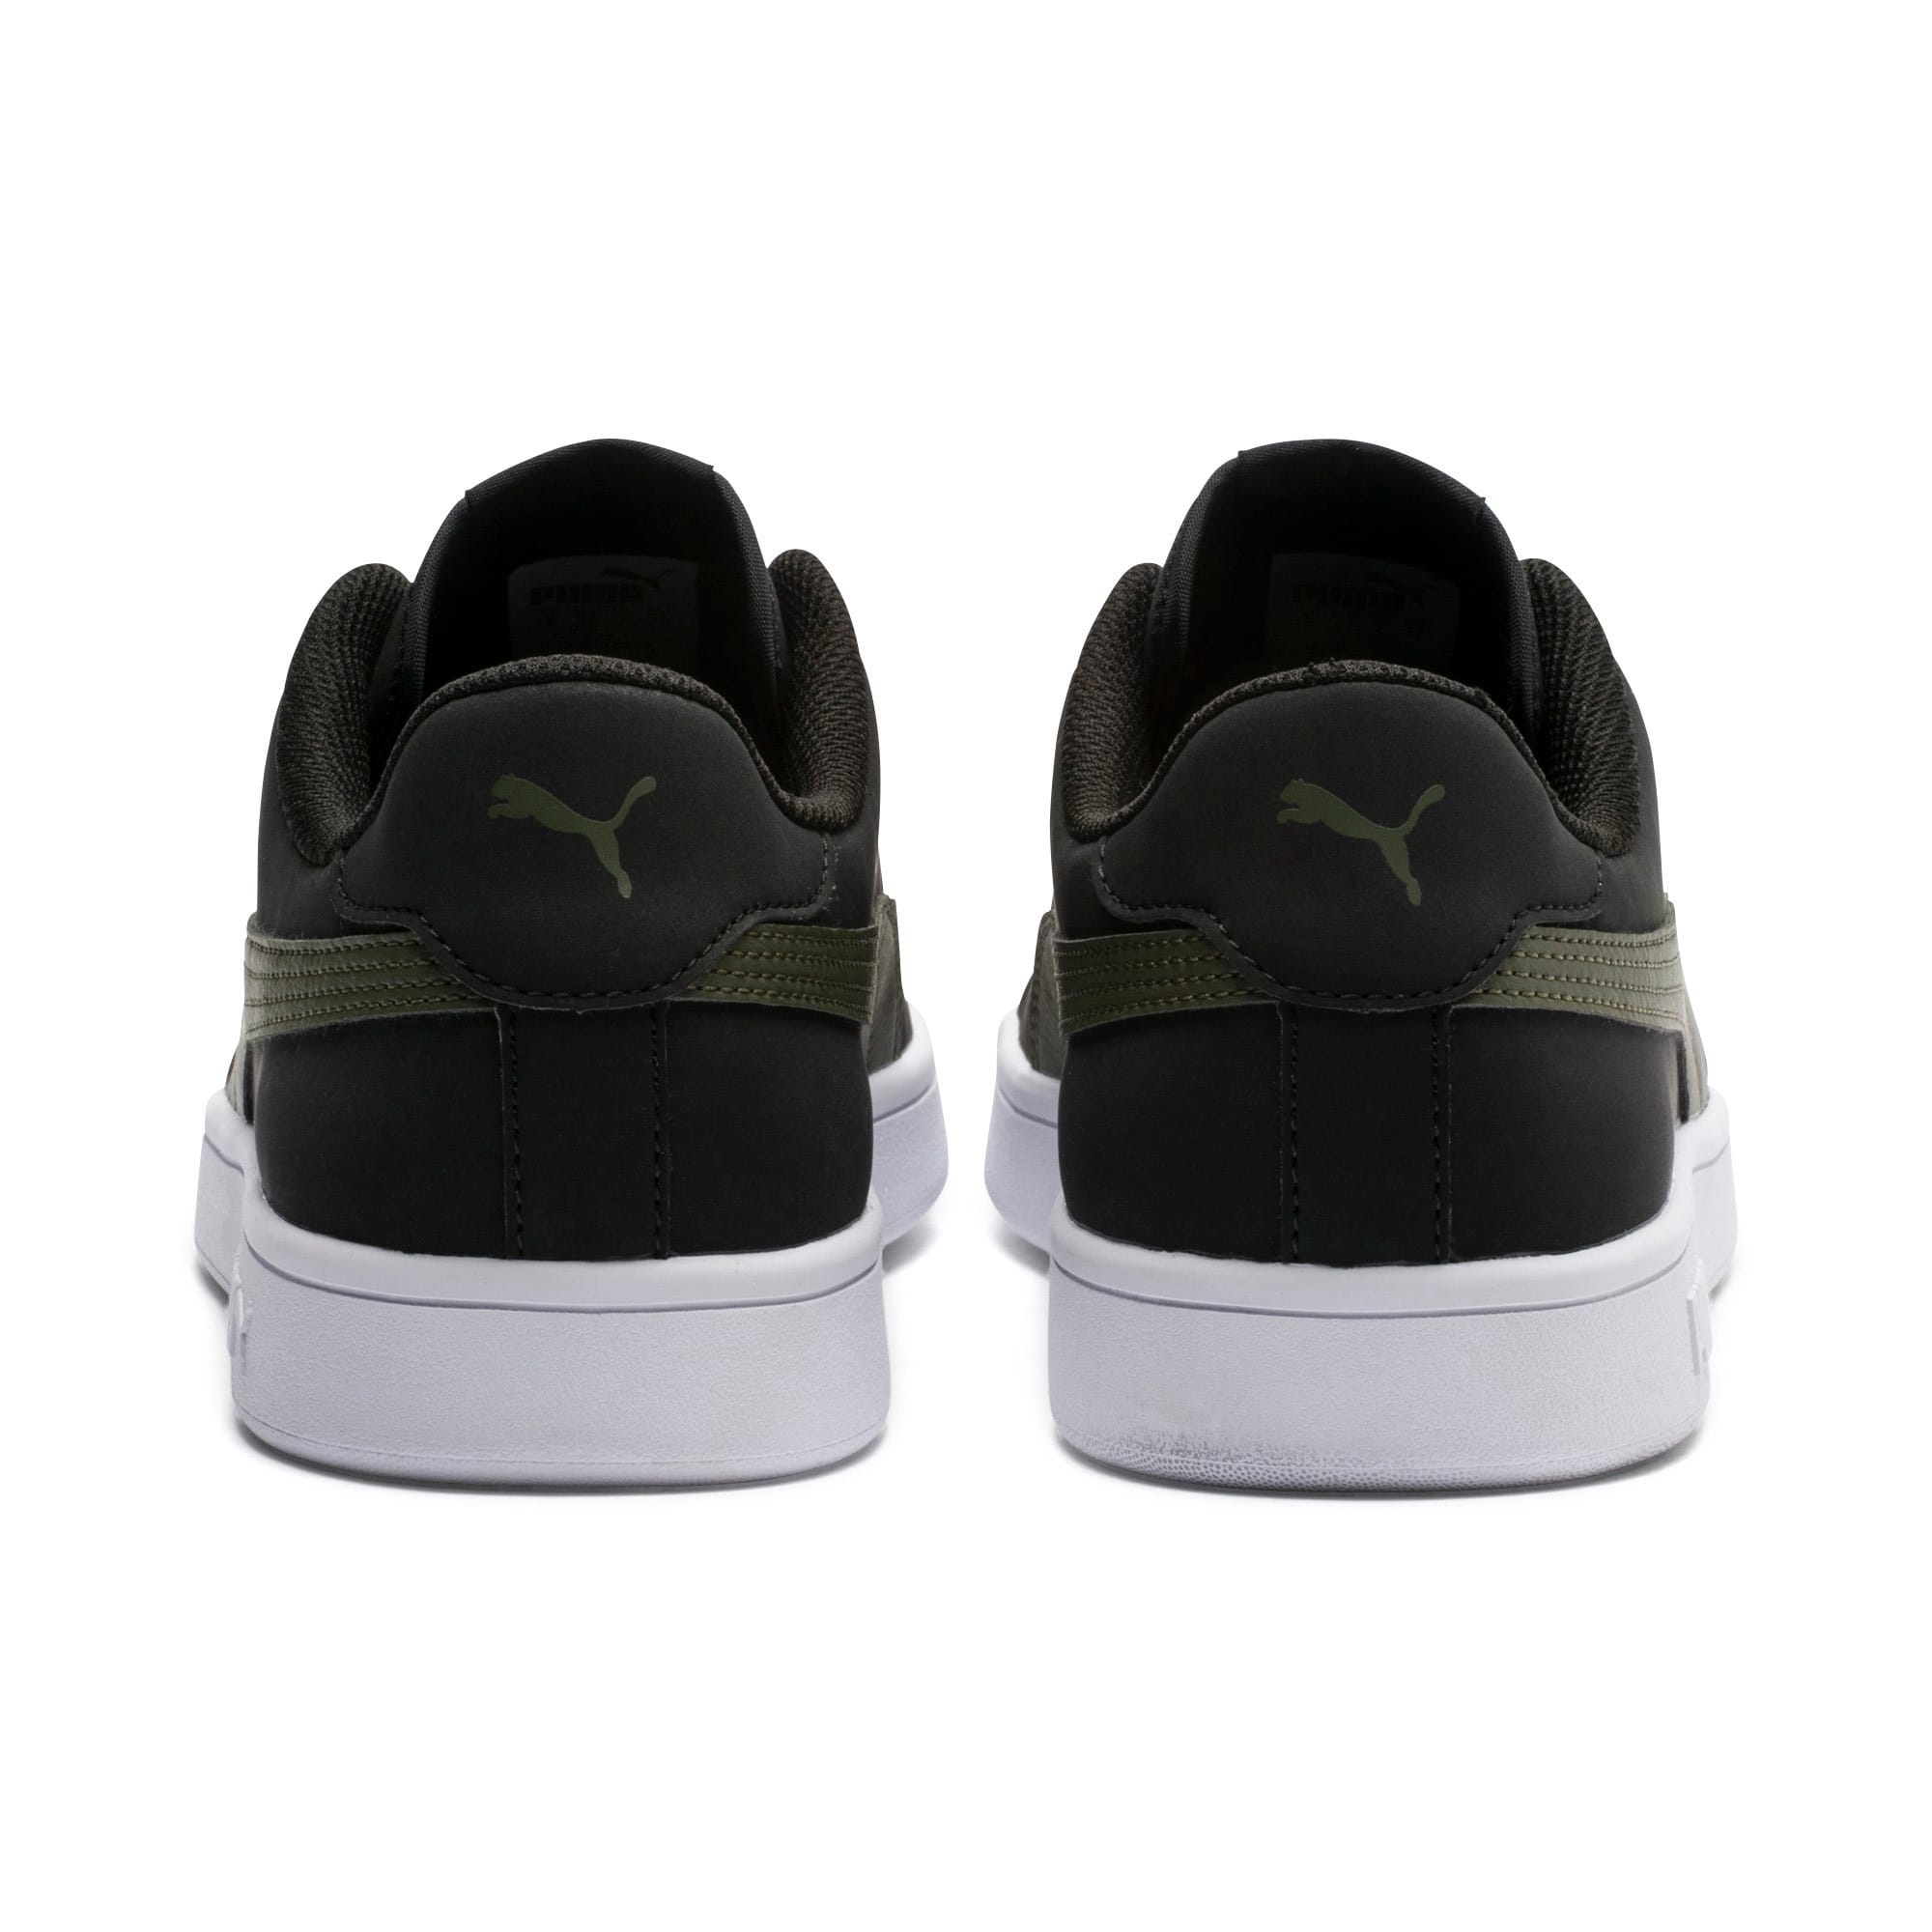 Thumbnail 3 of Smash v2 Buck Sneaker, Puma Black-Forest Night, medium